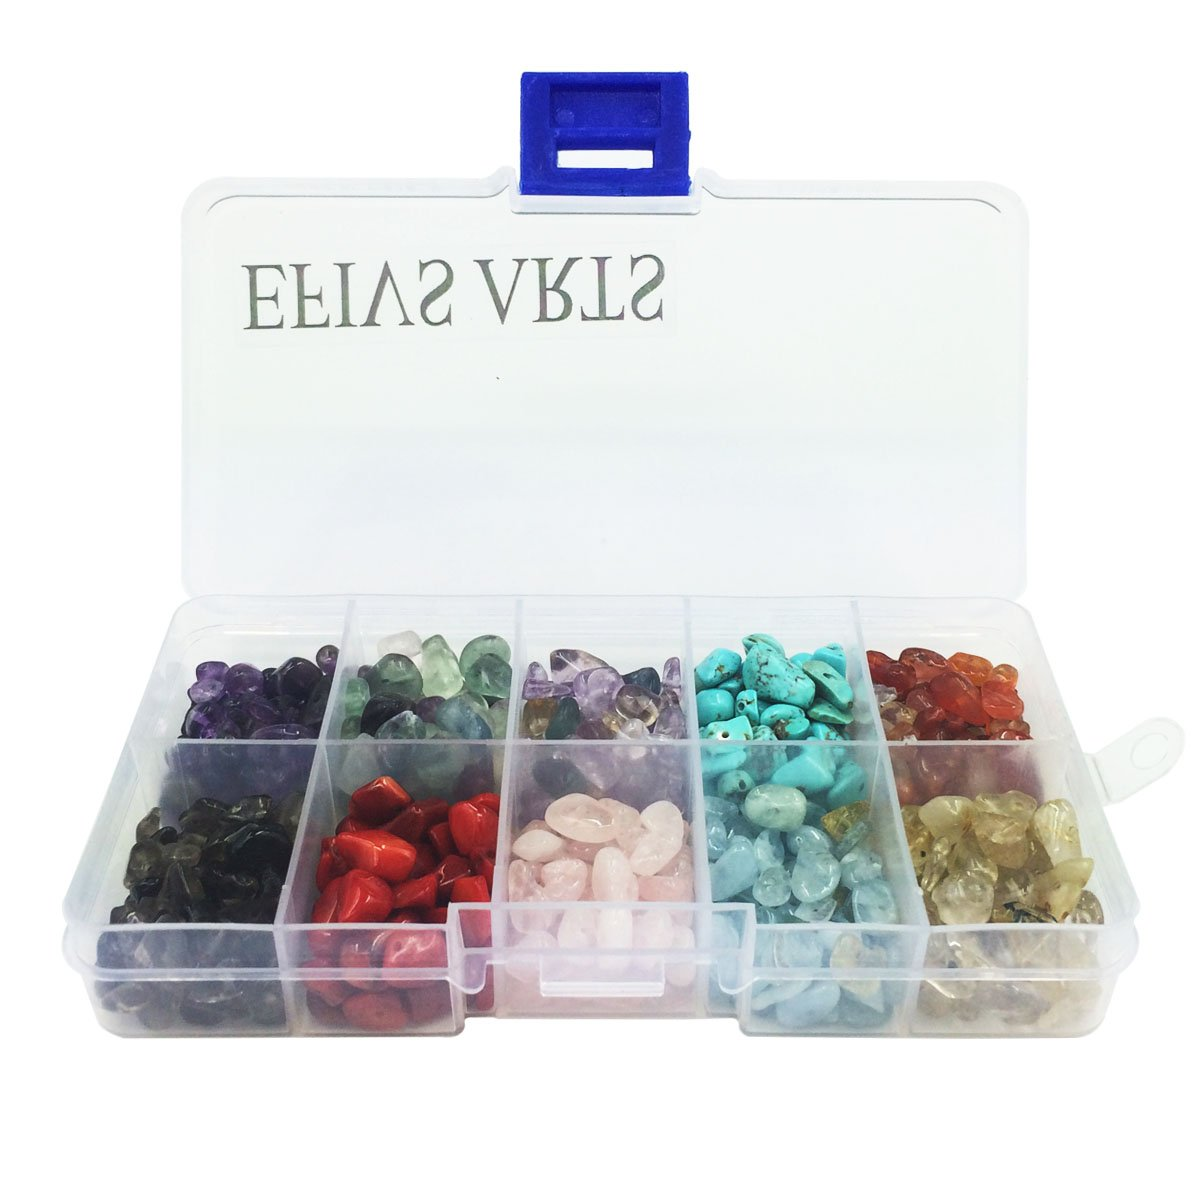 Efivs Arts Natural 10 Assorted Chips Stone Crushed Chunked Crystal Pieces Irregular Shaped Loose Beads in Bulk Value Pack 4336812276